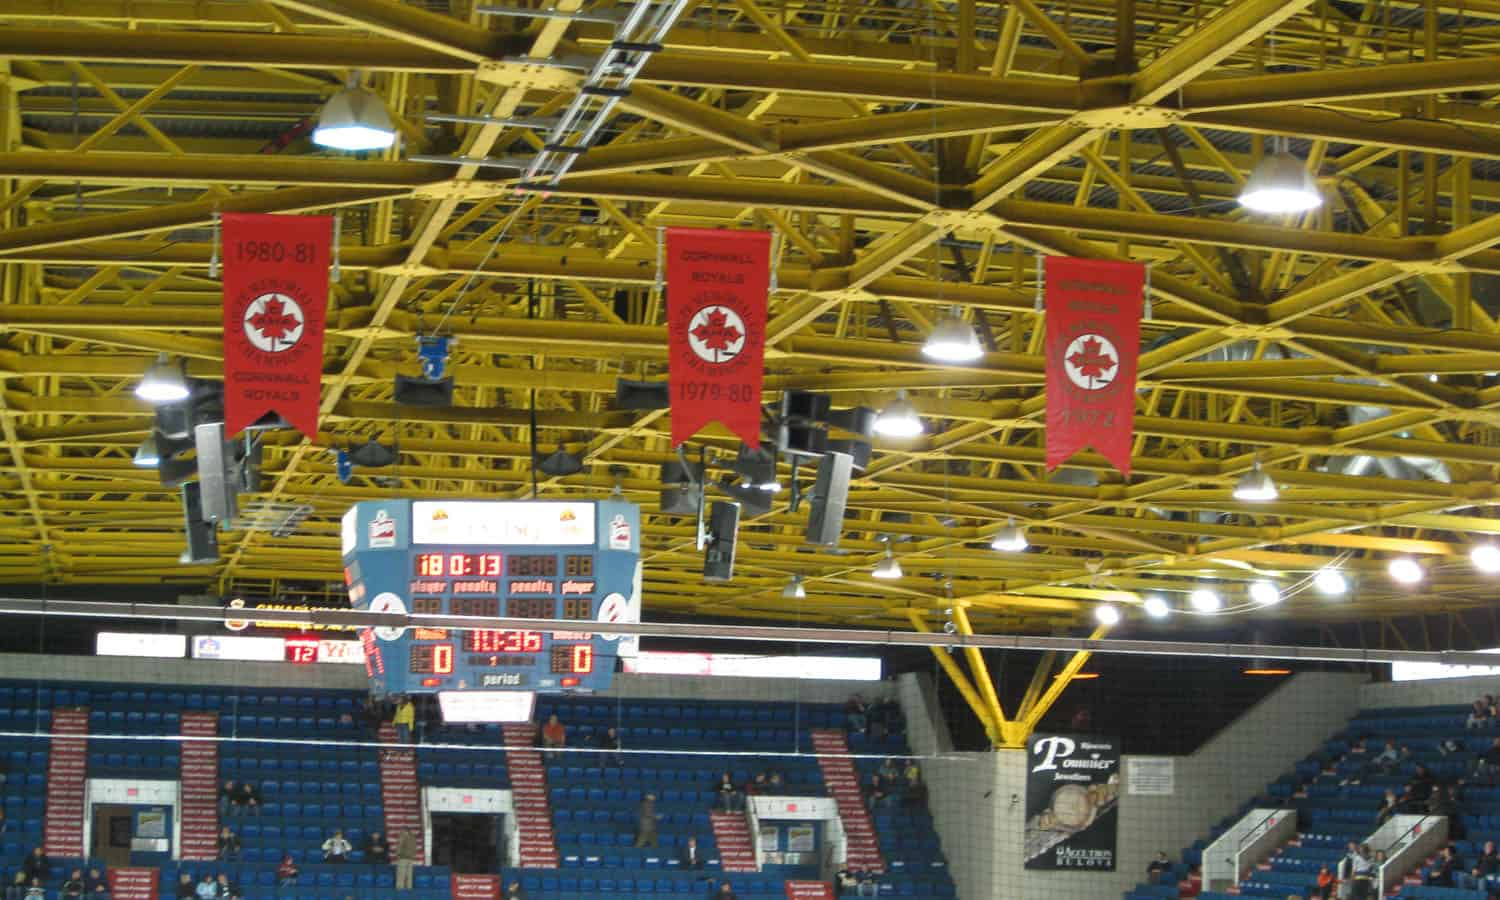 Space-frame roof and Royals Memorial Cup banners